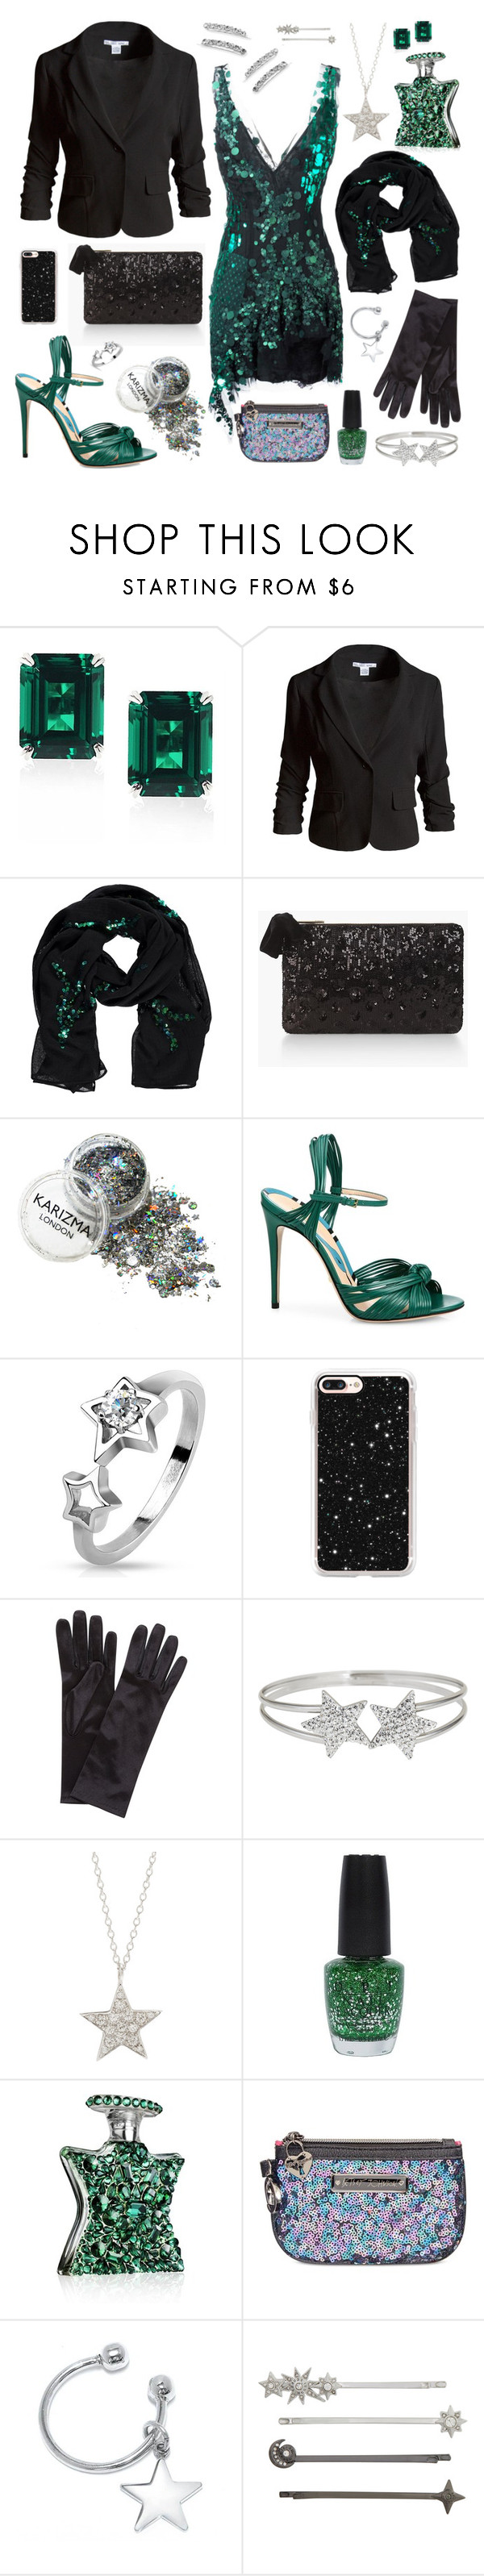 """Emerald Party Look"" by inspiredsara ❤ liked on Polyvore featuring Sans Souci, Talbots, Gucci, West Coast Jewelry, Casetify, John Lewis, Decadence, Finn, OPI and Bond No. 9"